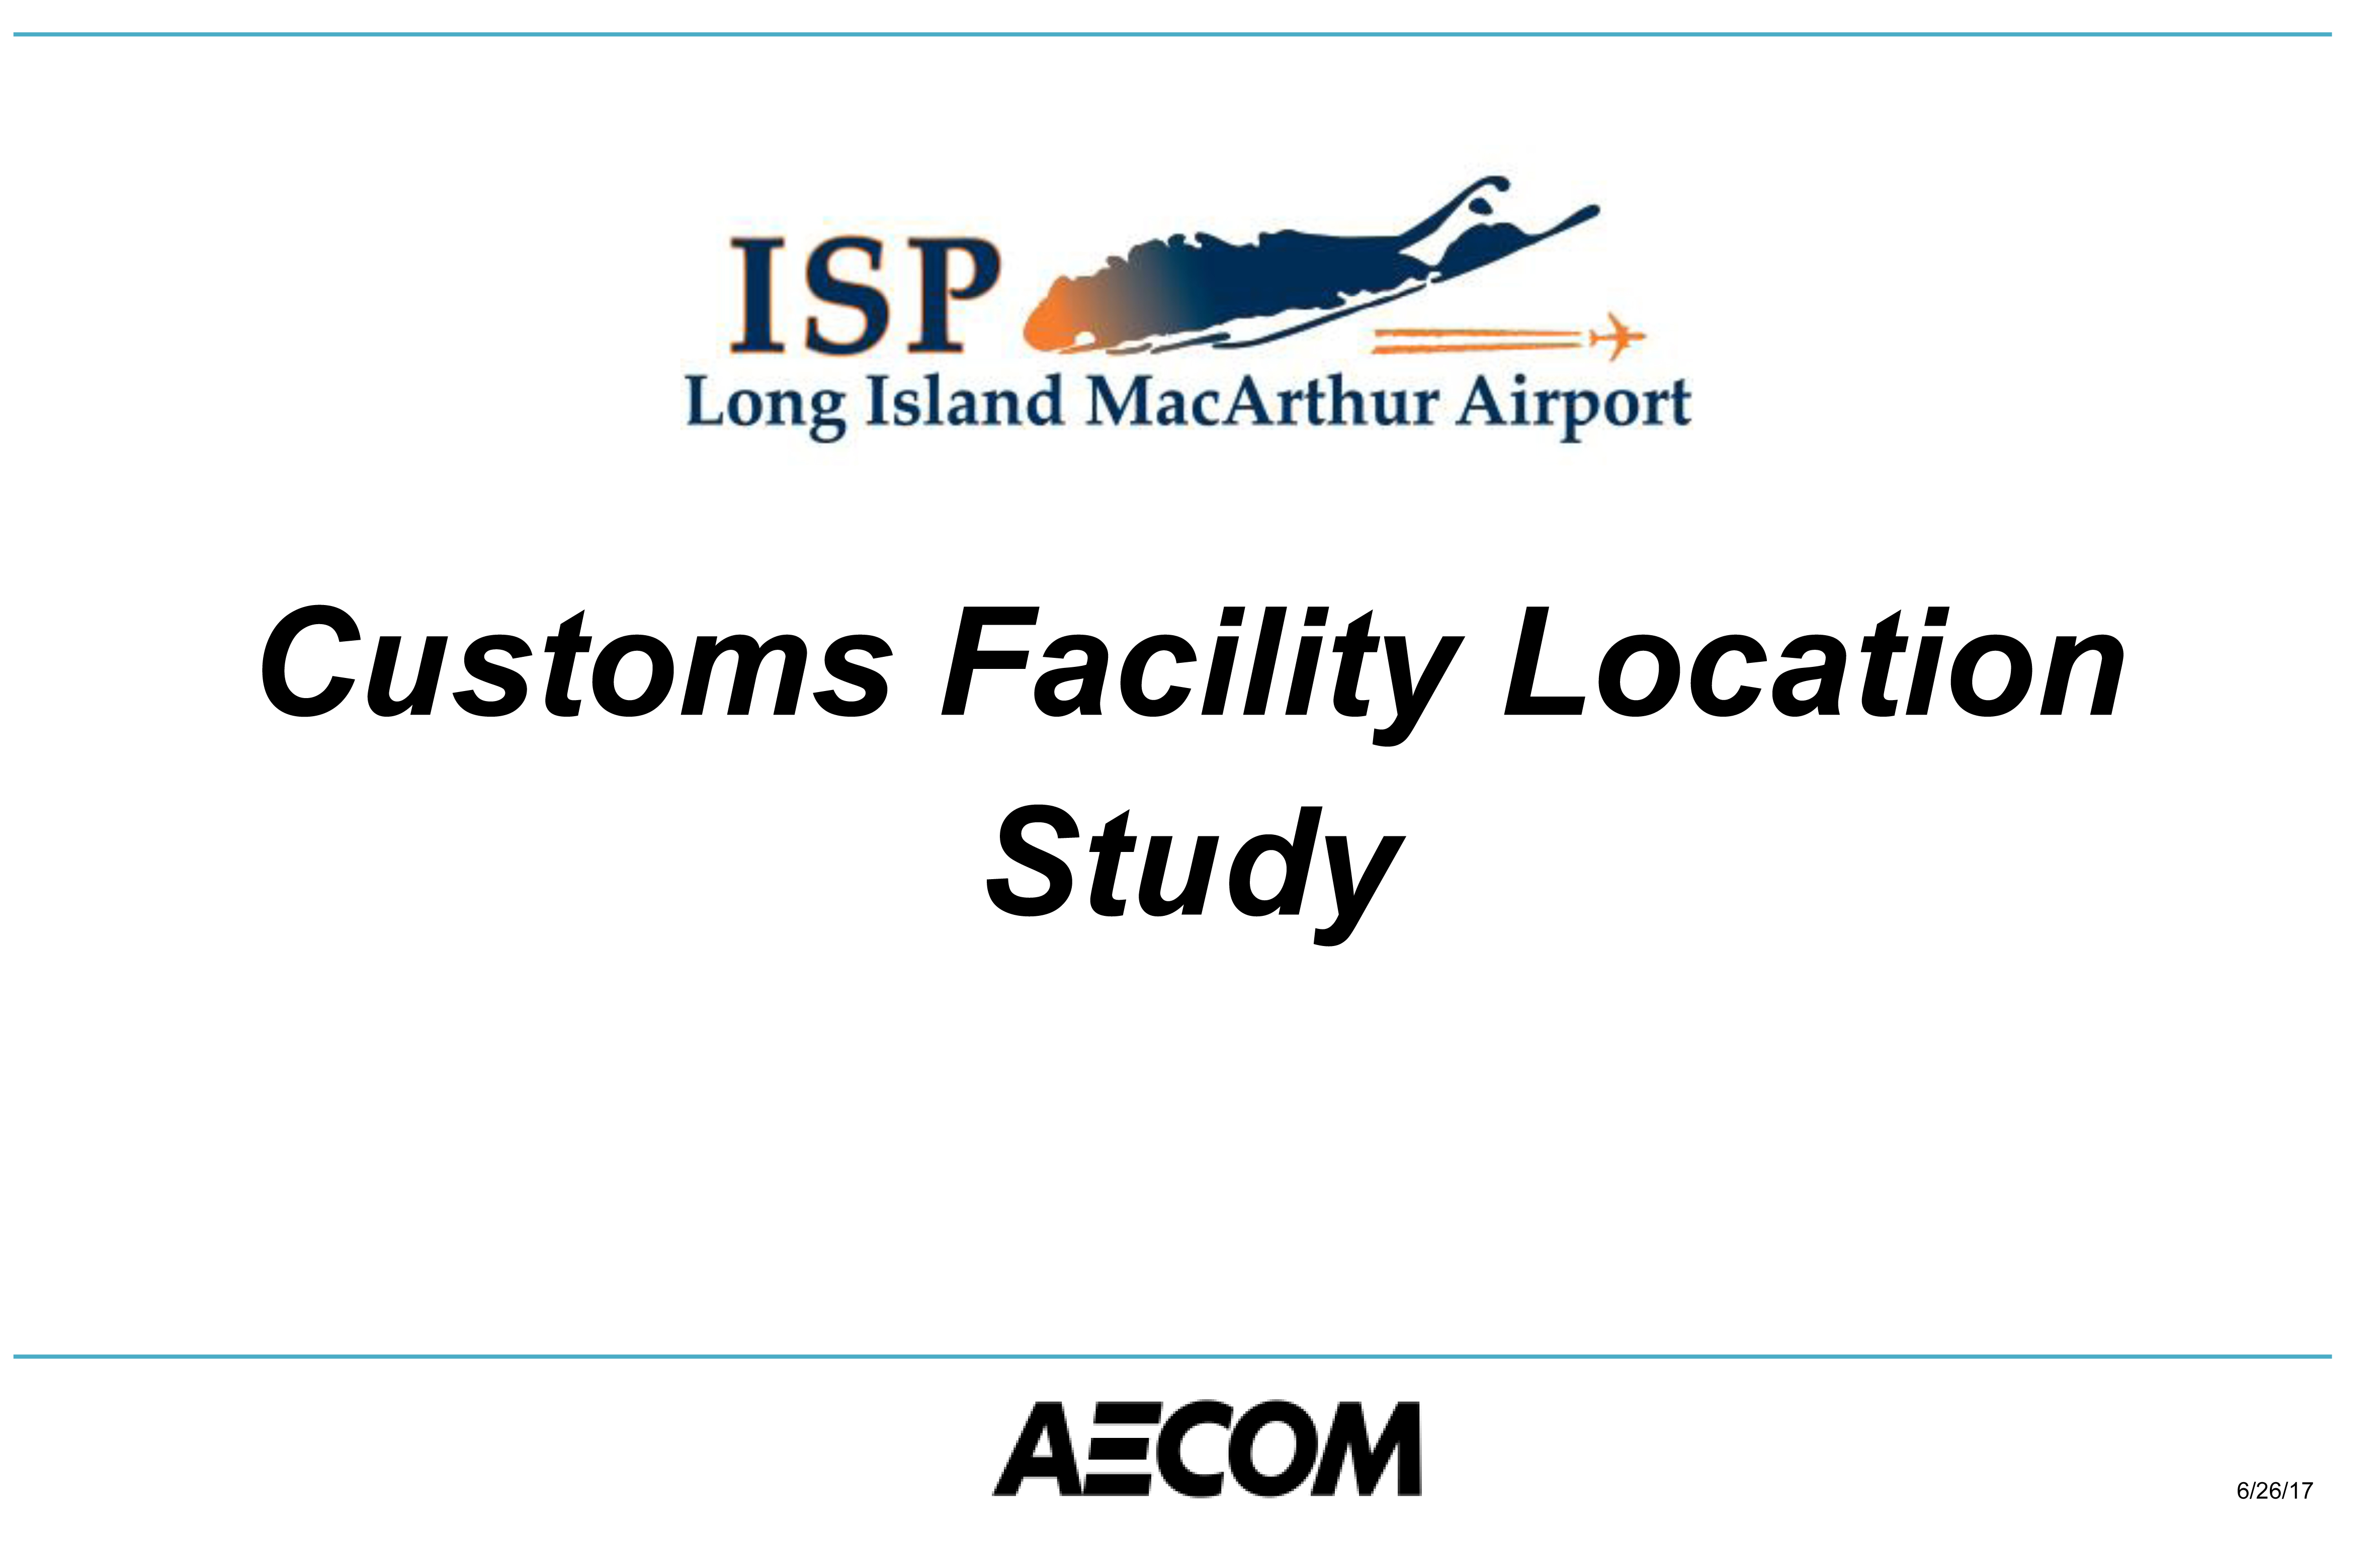 This image leads to a pdf of the Airport's Feasibility Study for the Construction of a US Customs Facility